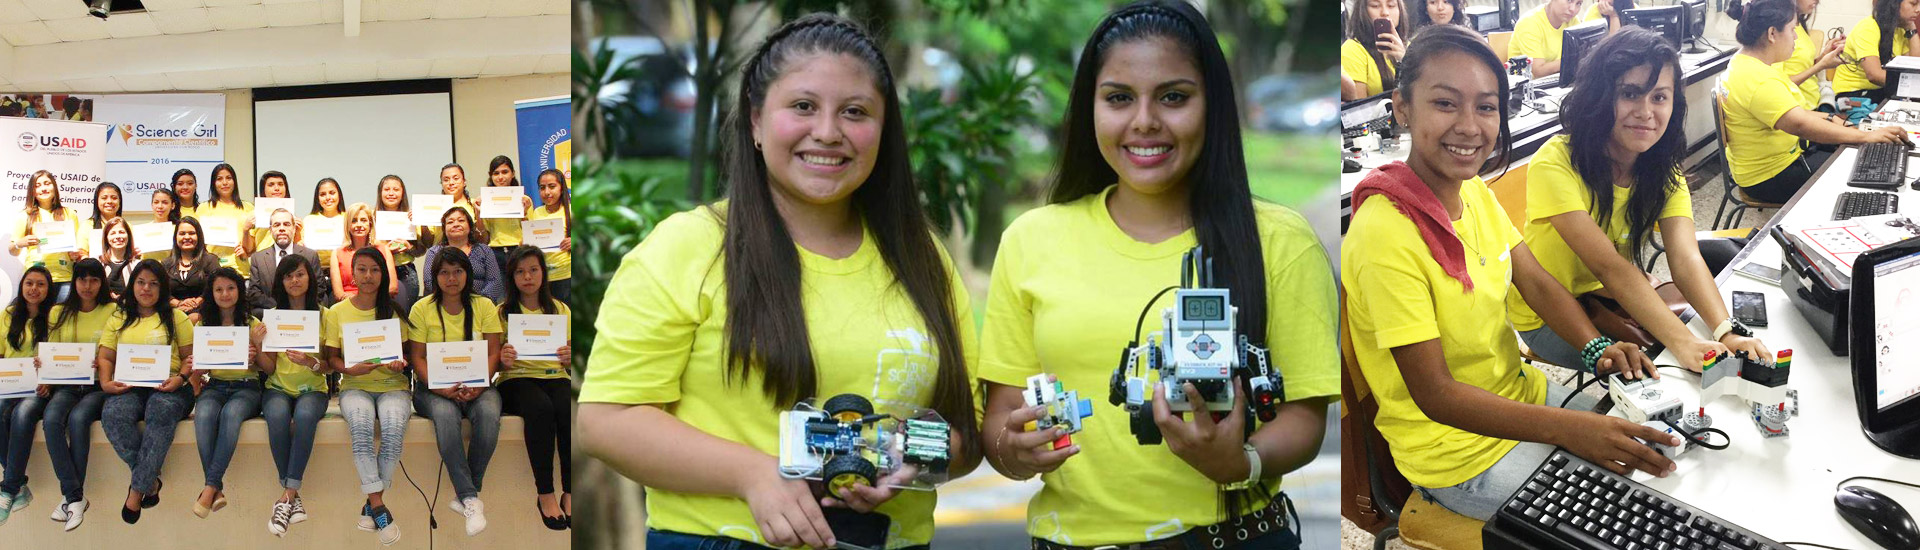 El Science Girl Camp en El Salvador